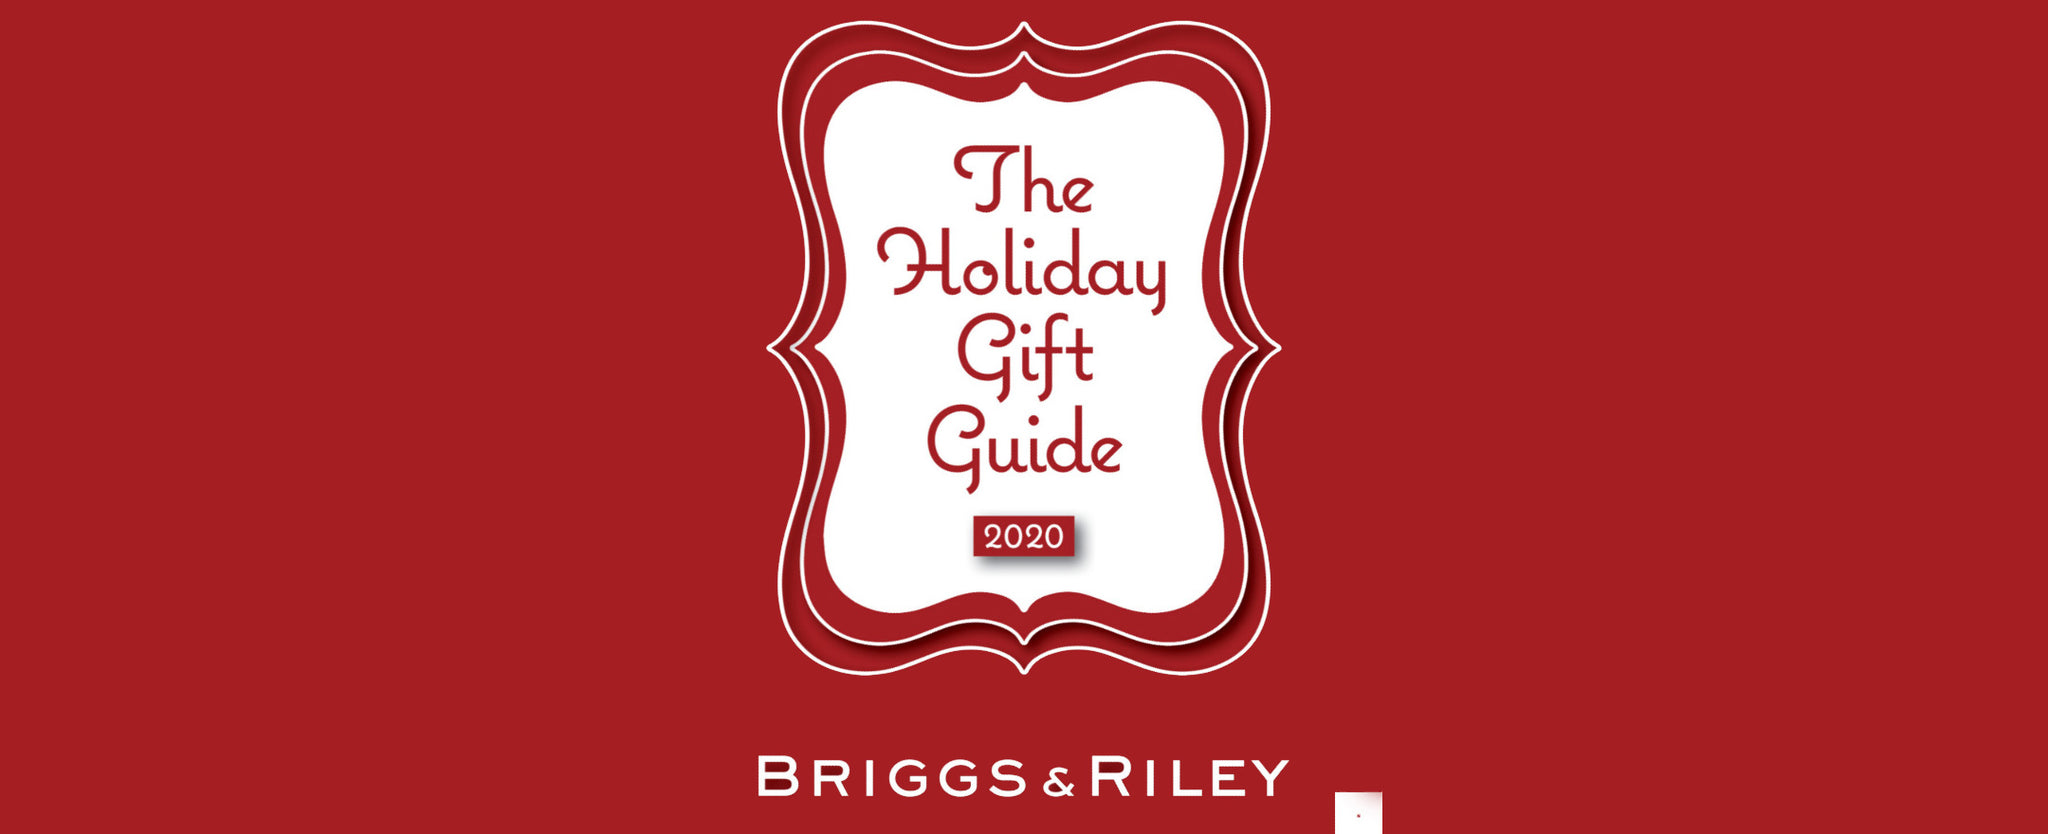 Briggs & Riley Holiday Gift Guide 2020